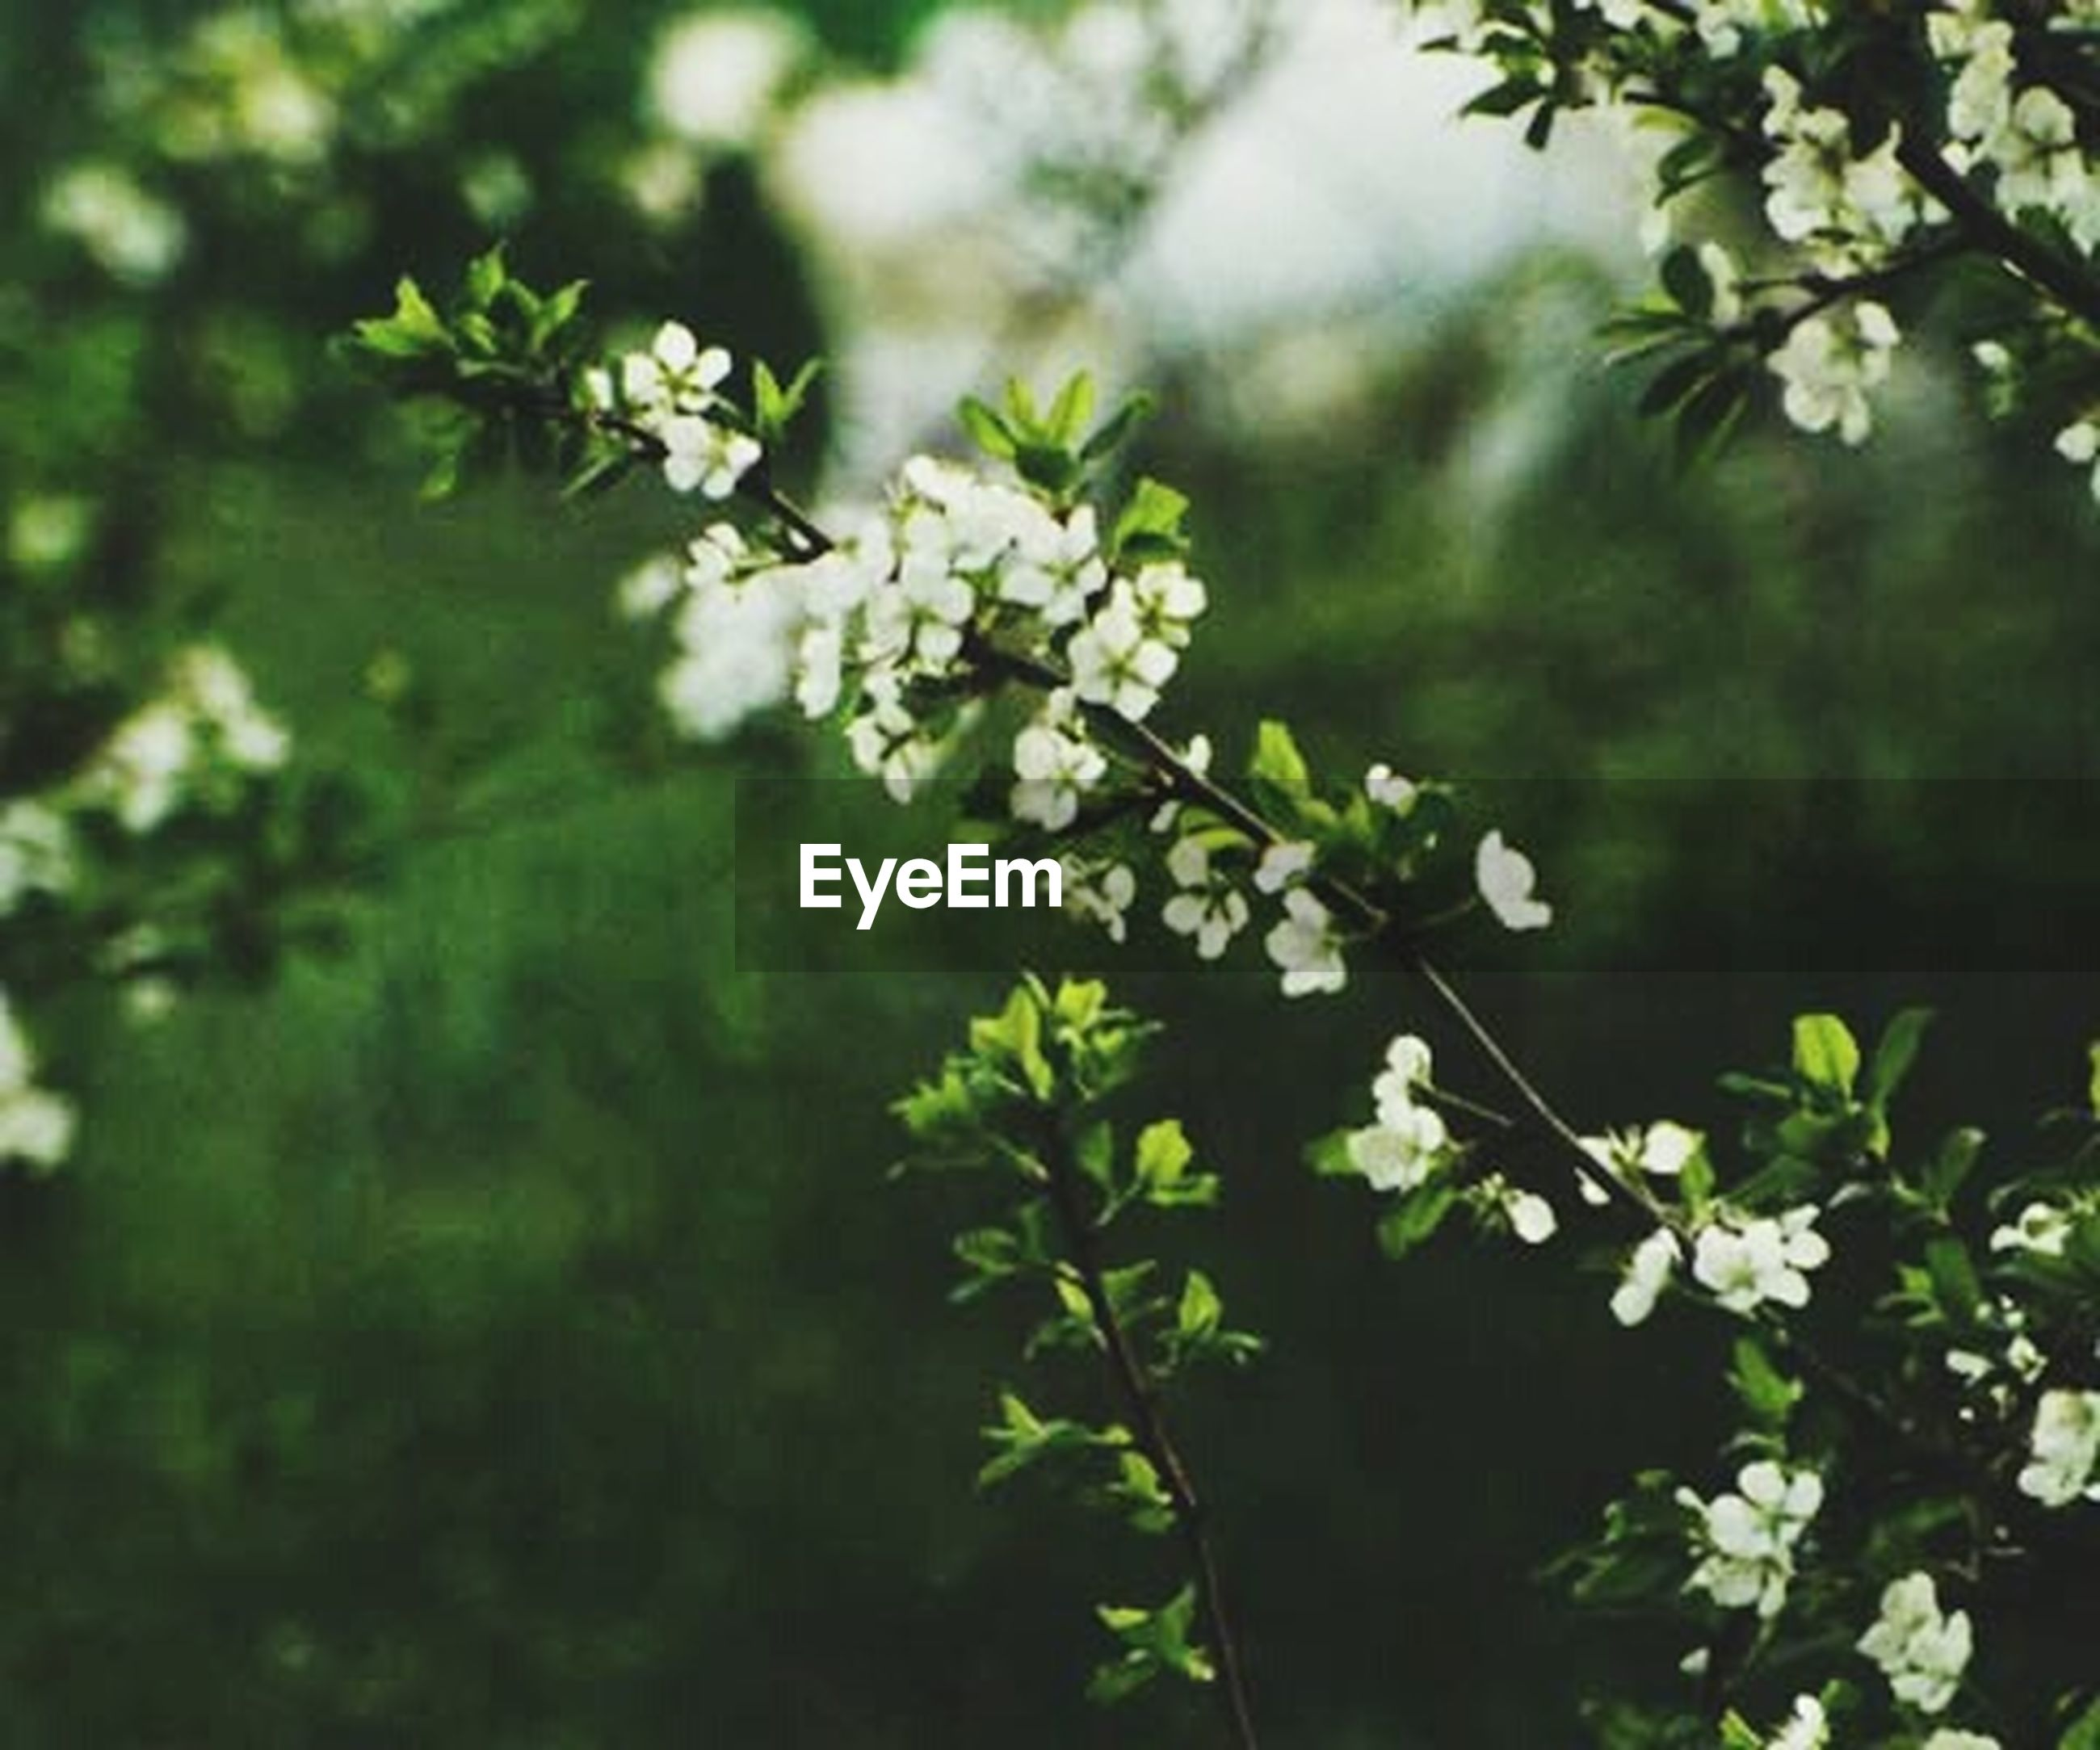 growth, flower, focus on foreground, leaf, freshness, nature, plant, beauty in nature, branch, close-up, tree, green color, fragility, selective focus, day, outdoors, stem, white color, twig, no people